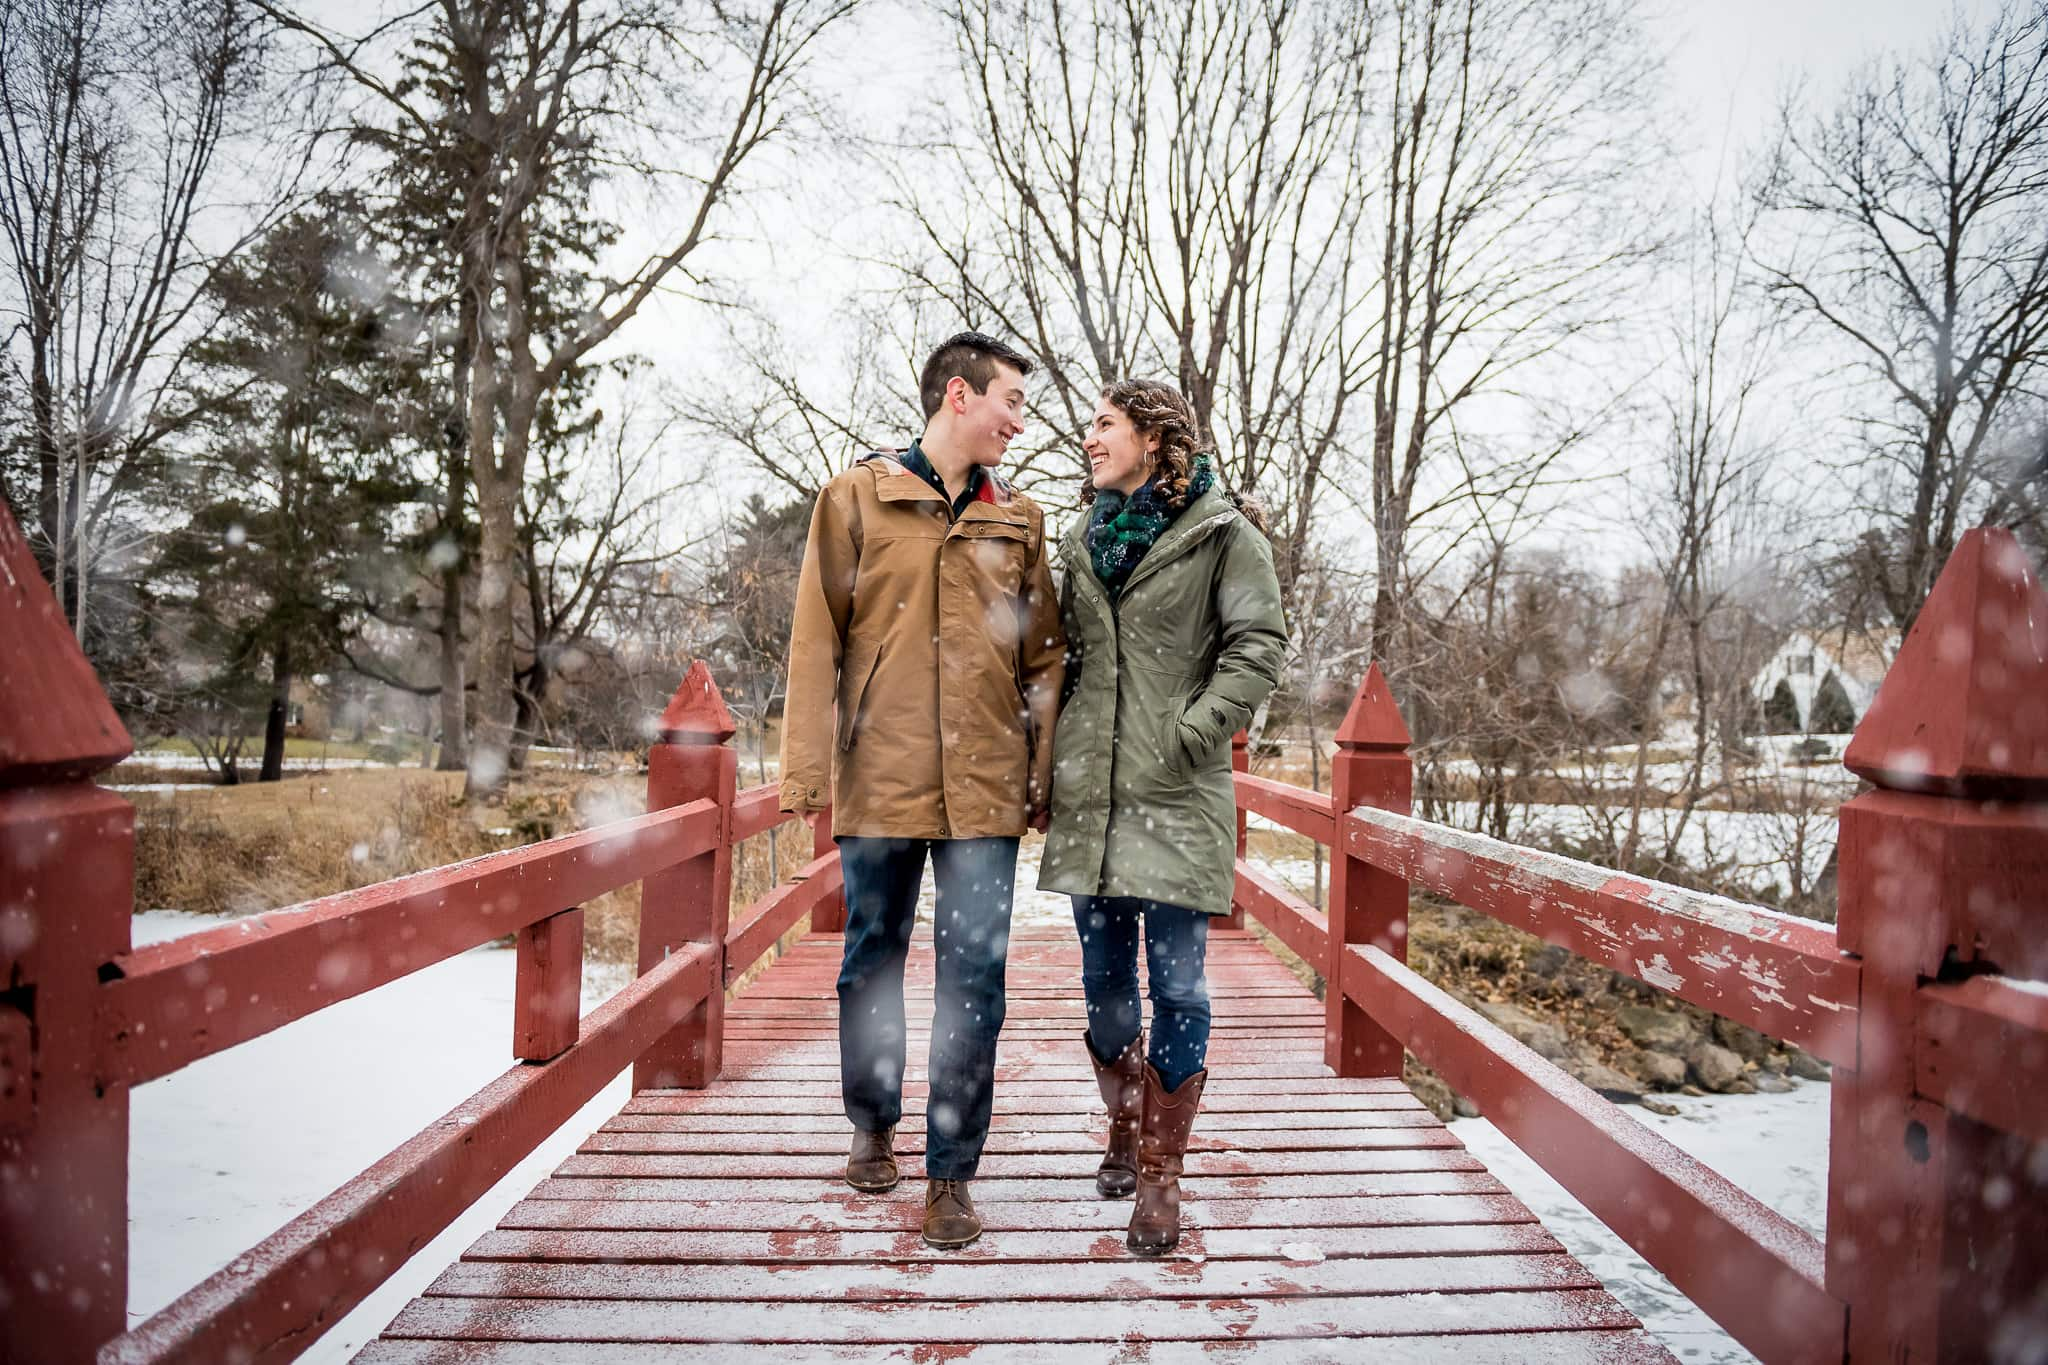 Knollwood neighborhood engagement photo of couple walking in snowfall on the red wooden foot bridge